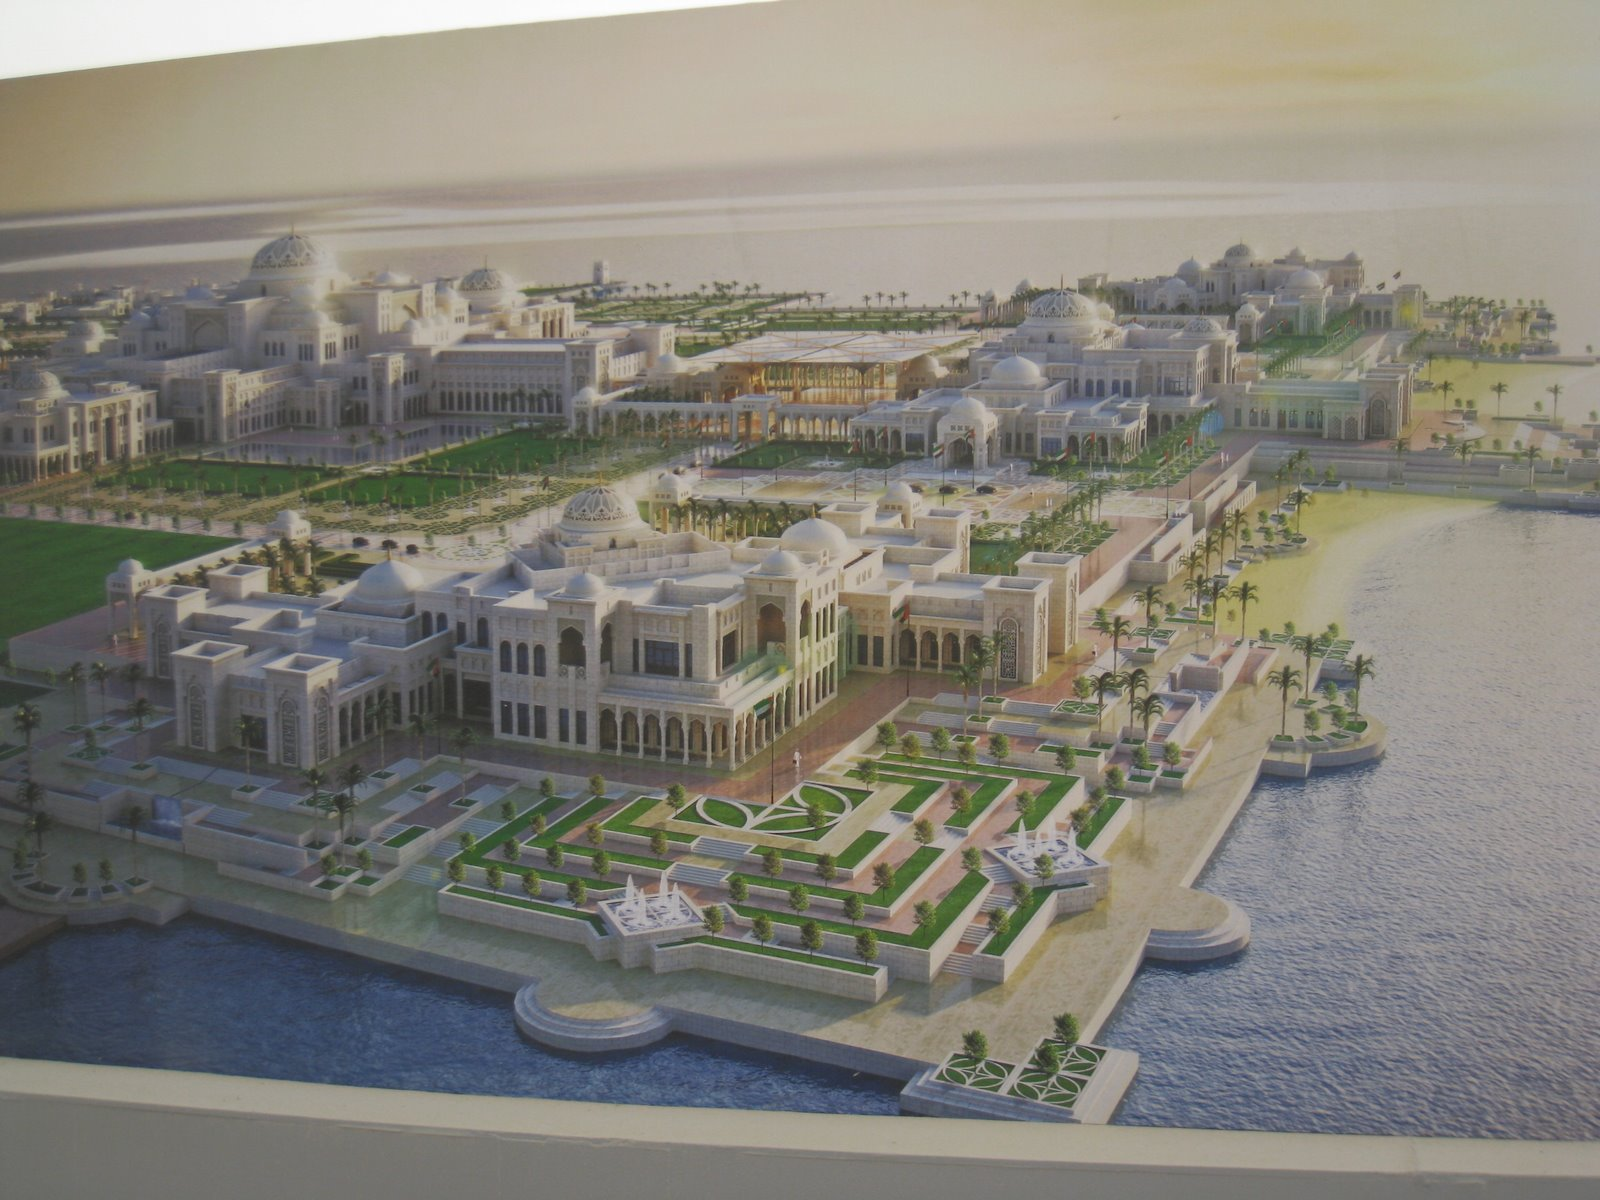 Abu Dhabi's Jaw Dropping New Presidential Palace